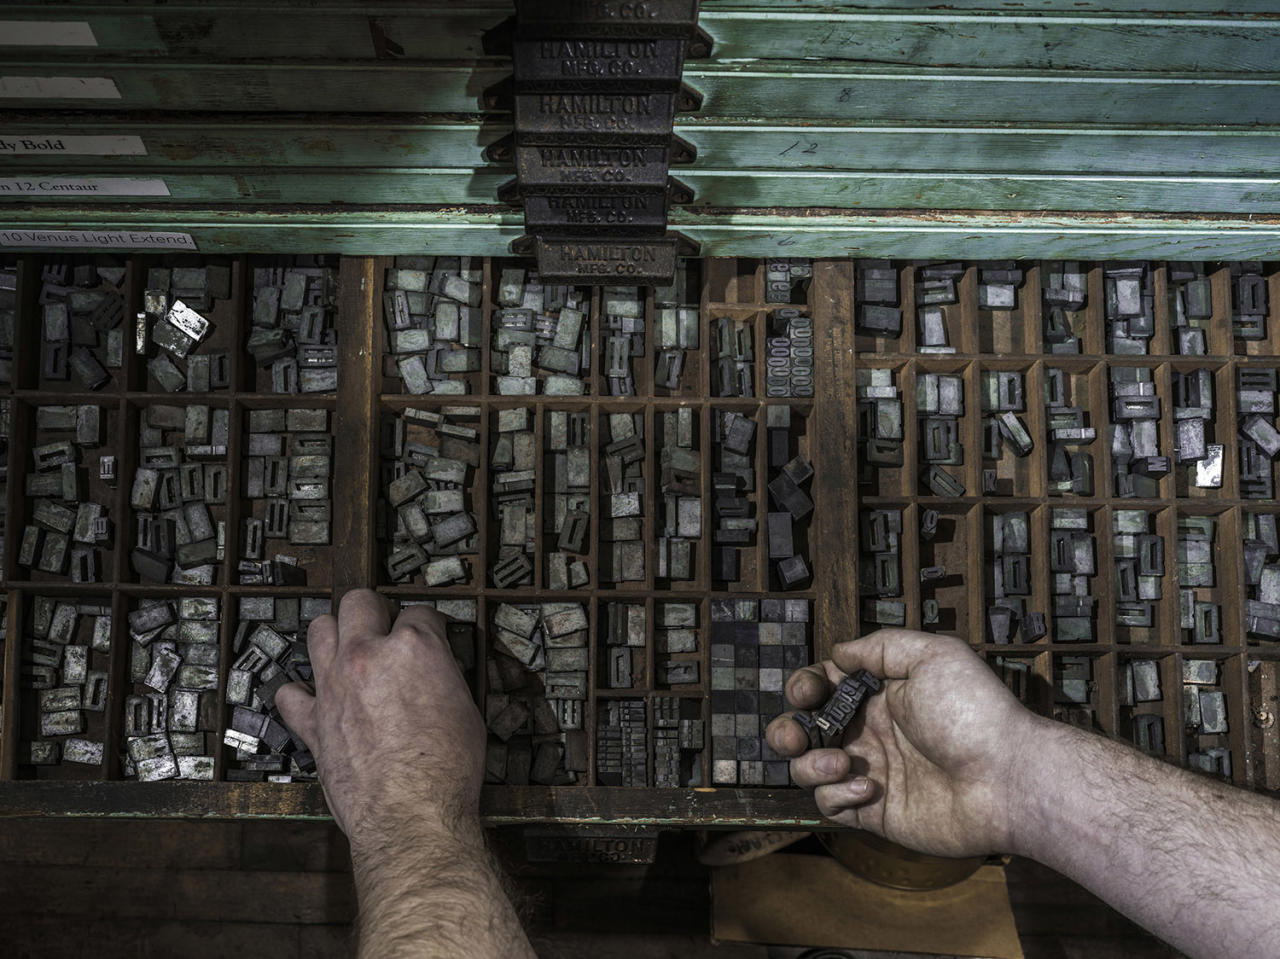 <p><strong>Nicolas — typesetter</strong><br /> With just forearms and hands showing, Sanwal's images showcase the work carried out by florists, writers and bakers; pianists, typesetters and cobblers. (Photo: Sanwal Deen/Caters News) </p>